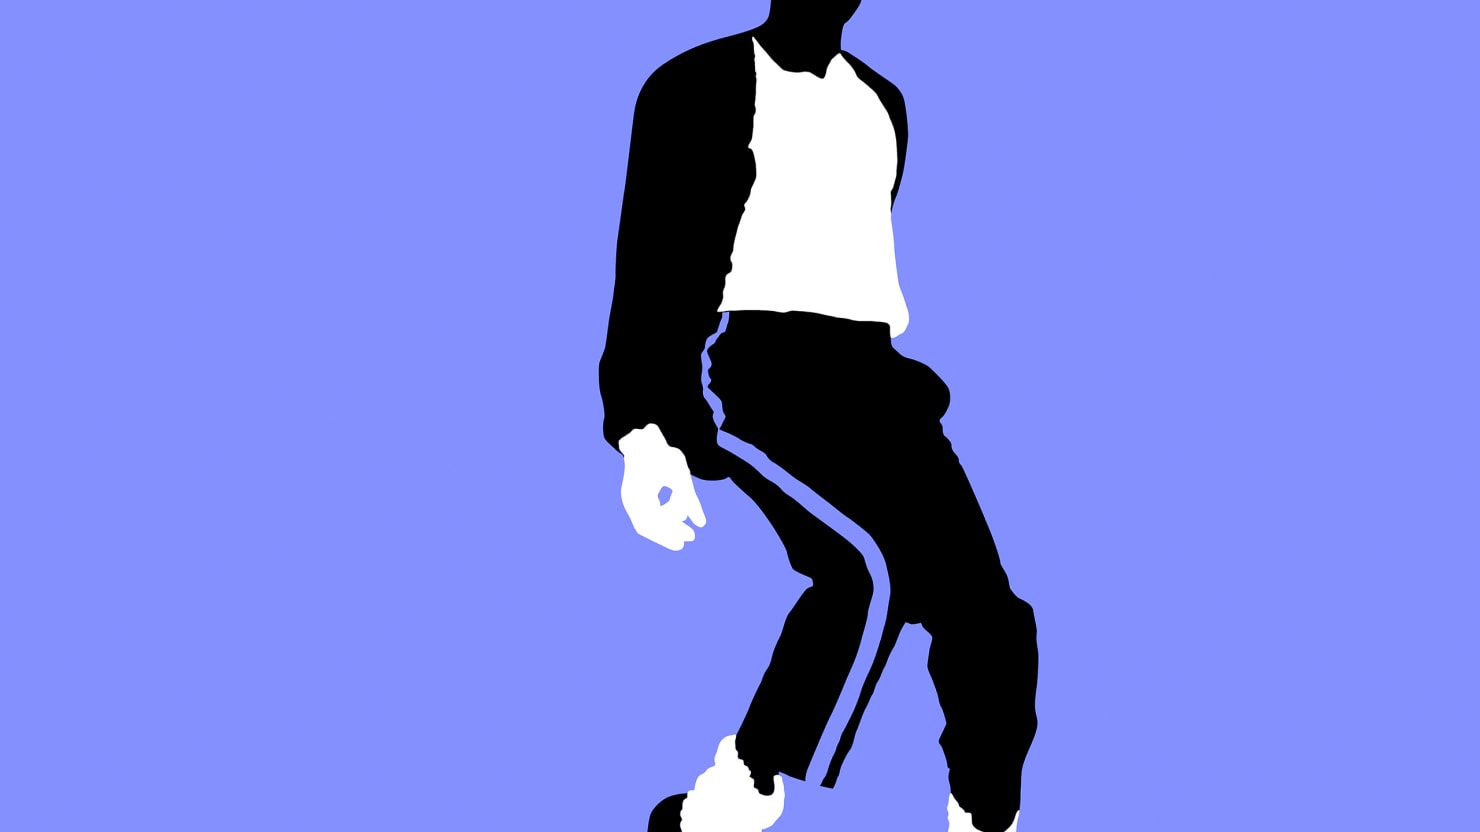 Cakewalk, Moonwalk, Electric Boogaloo: The Dancers Who Defined America as We Know It